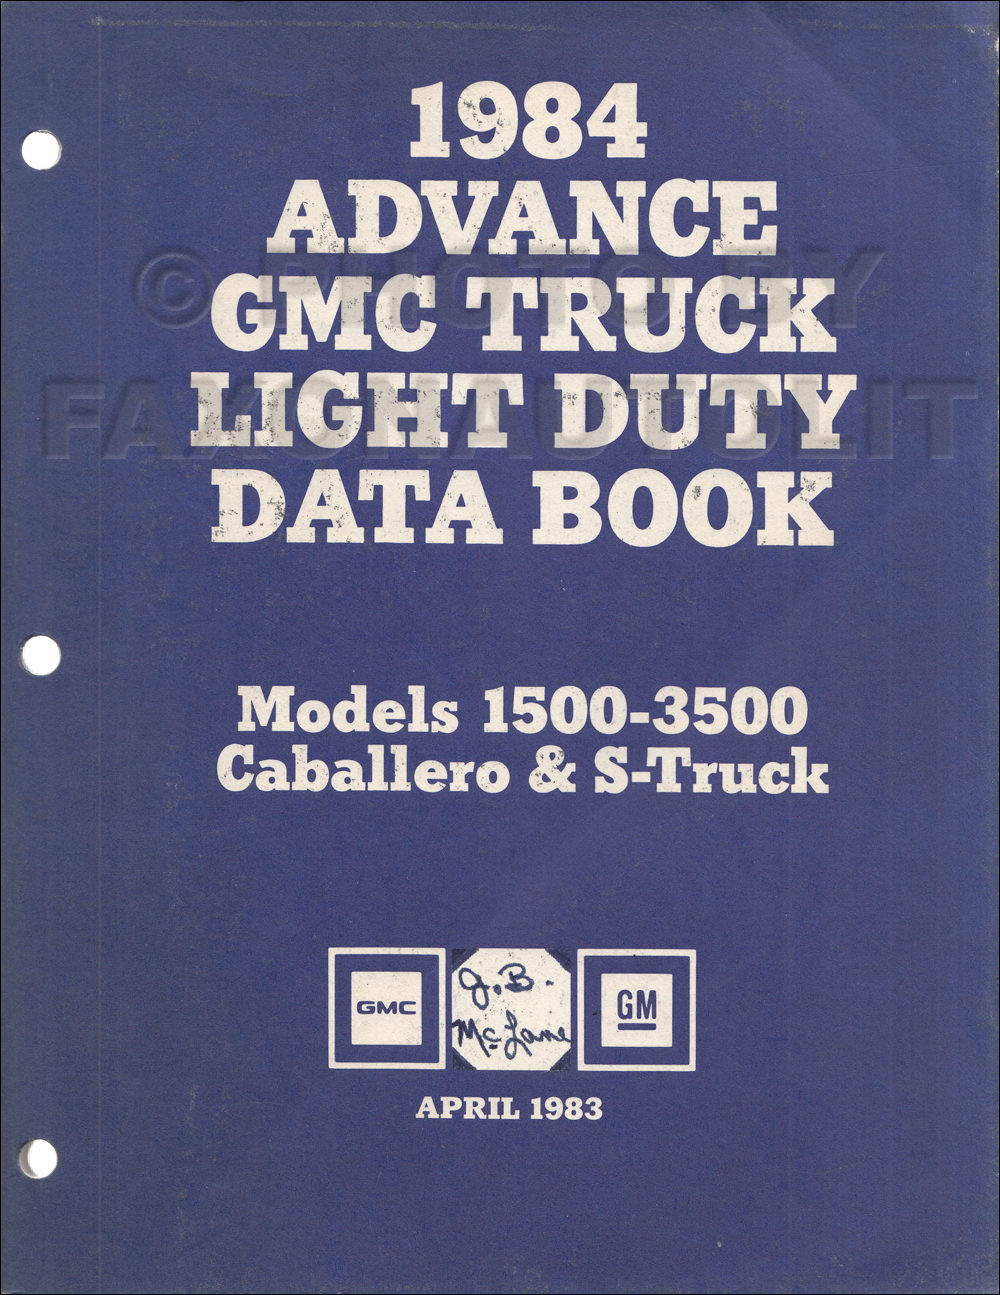 1984 GMC Advance Light Duty Data Book Original